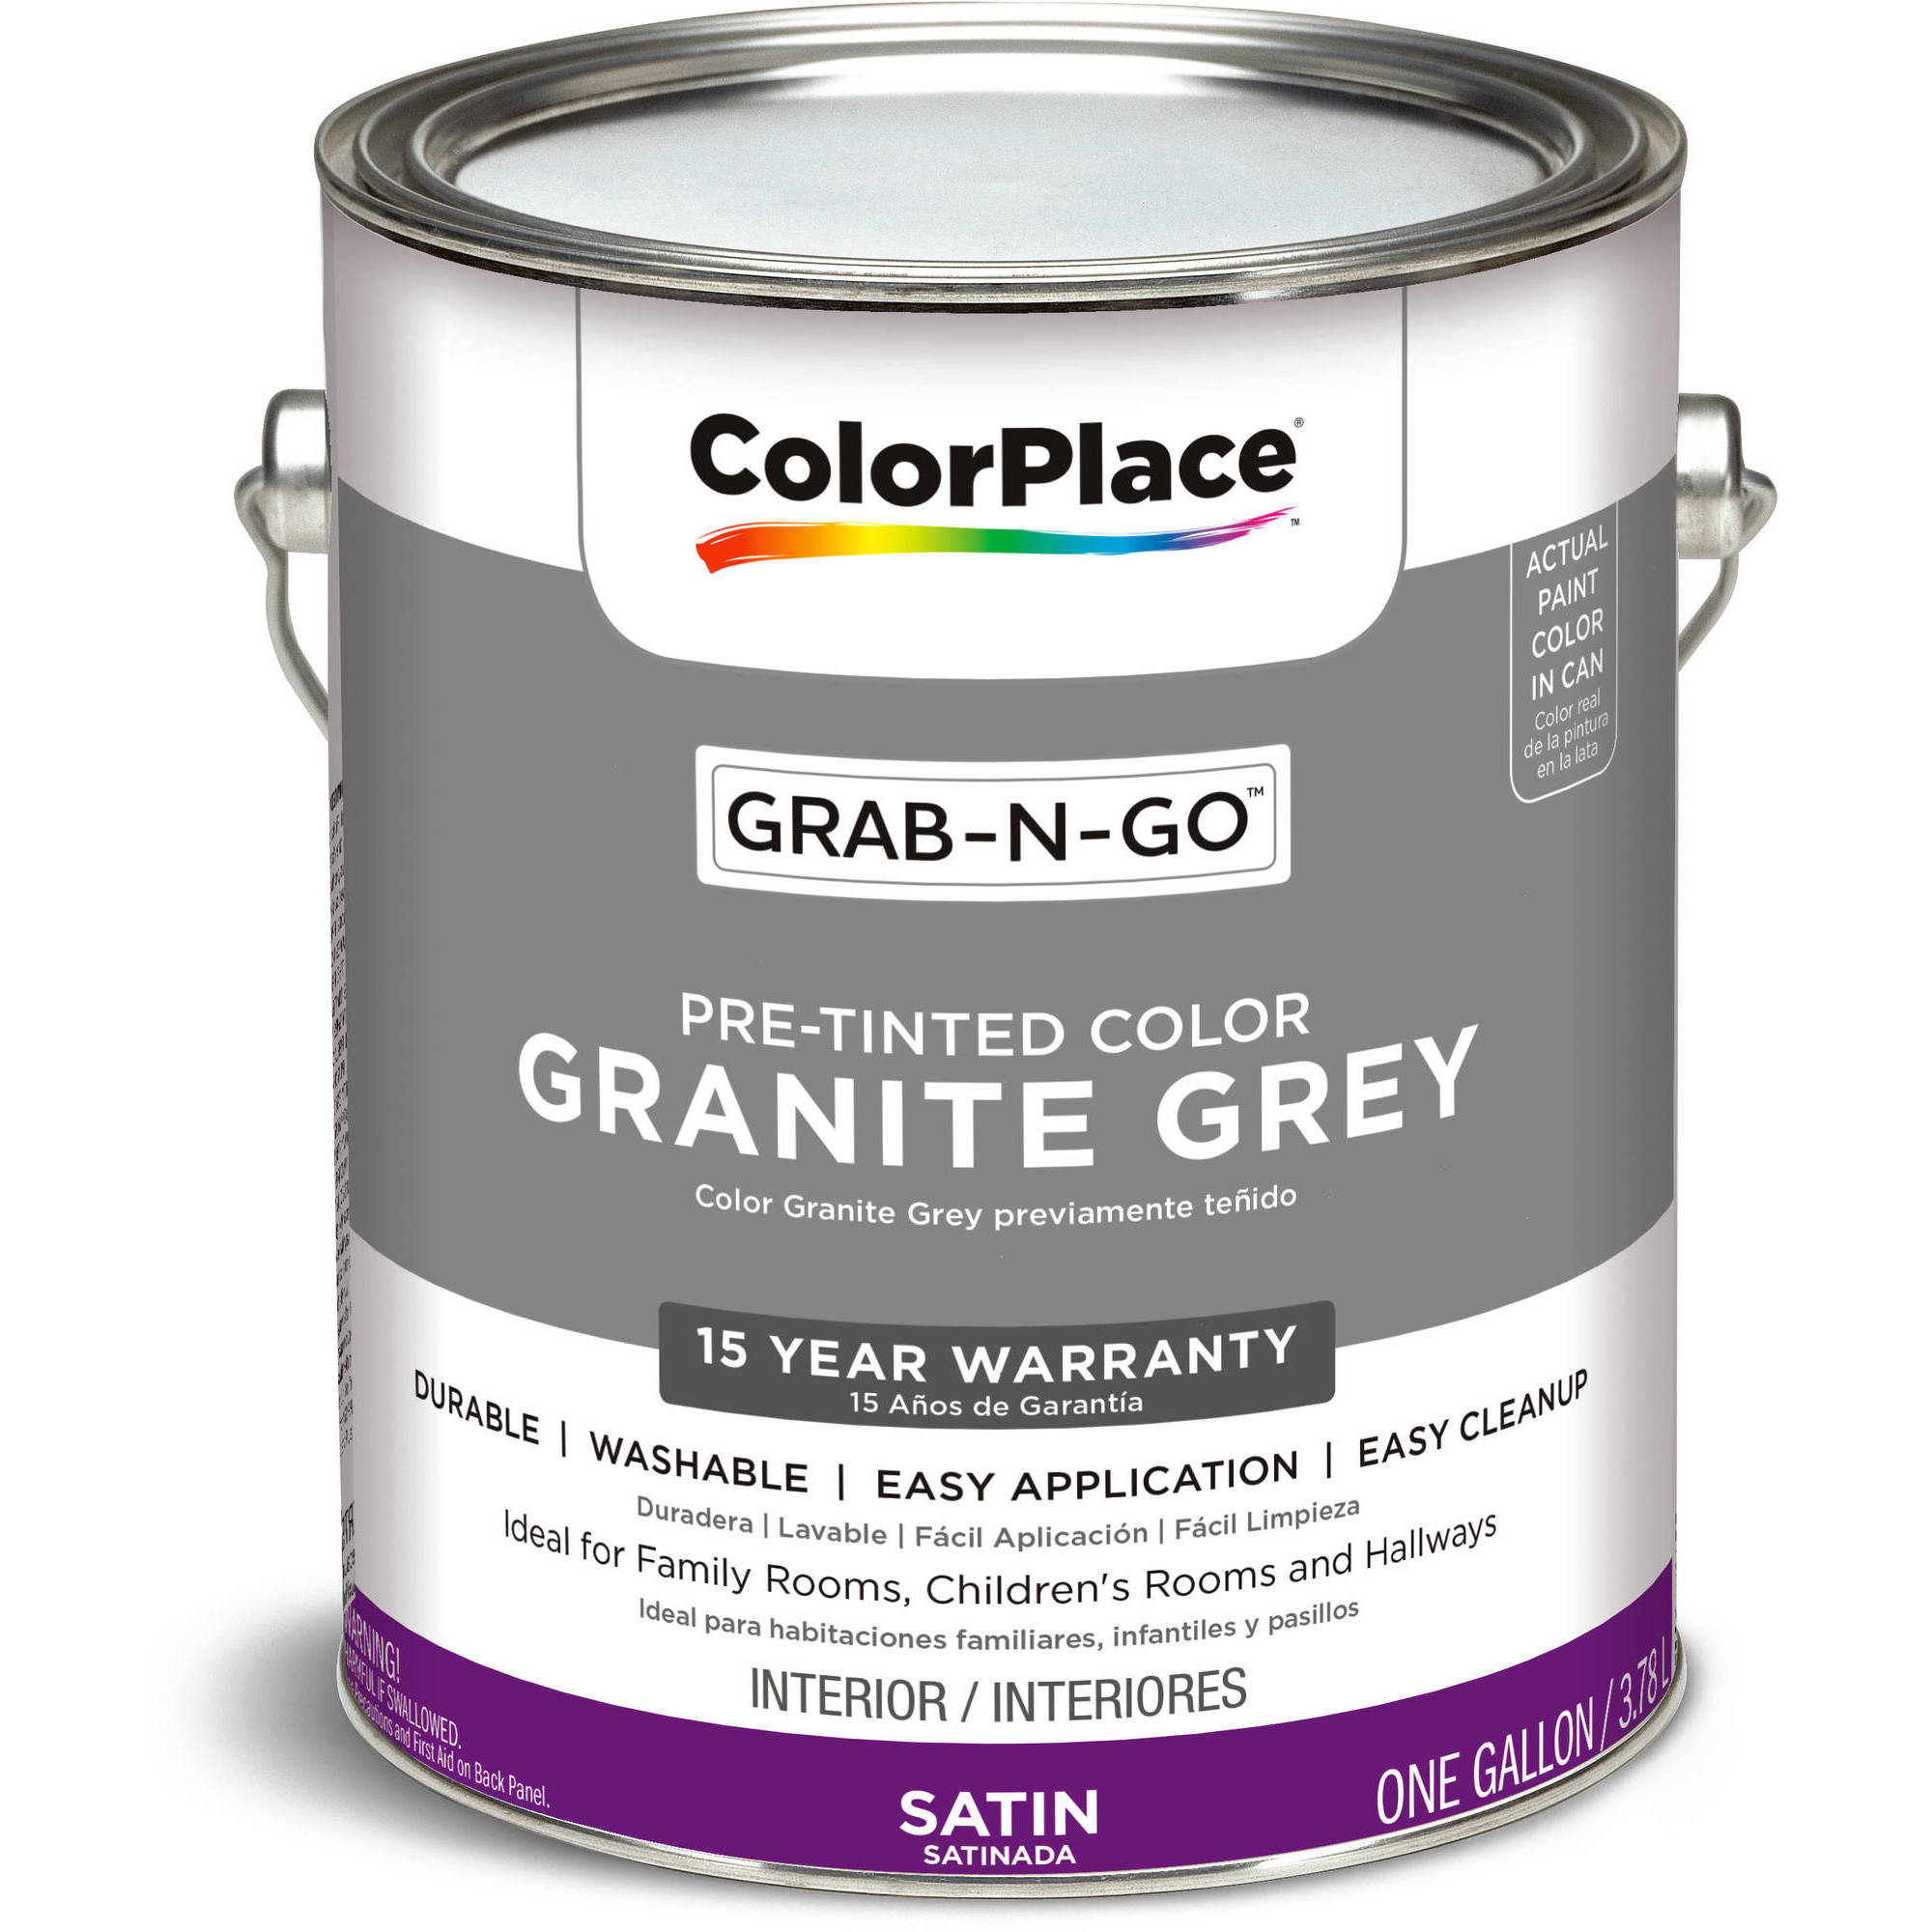 ColorPlace Grab-N-Go, Interior Paint, Satin Finish, Granite Grey, 1 Gallon by PPG Architectural CoatingS